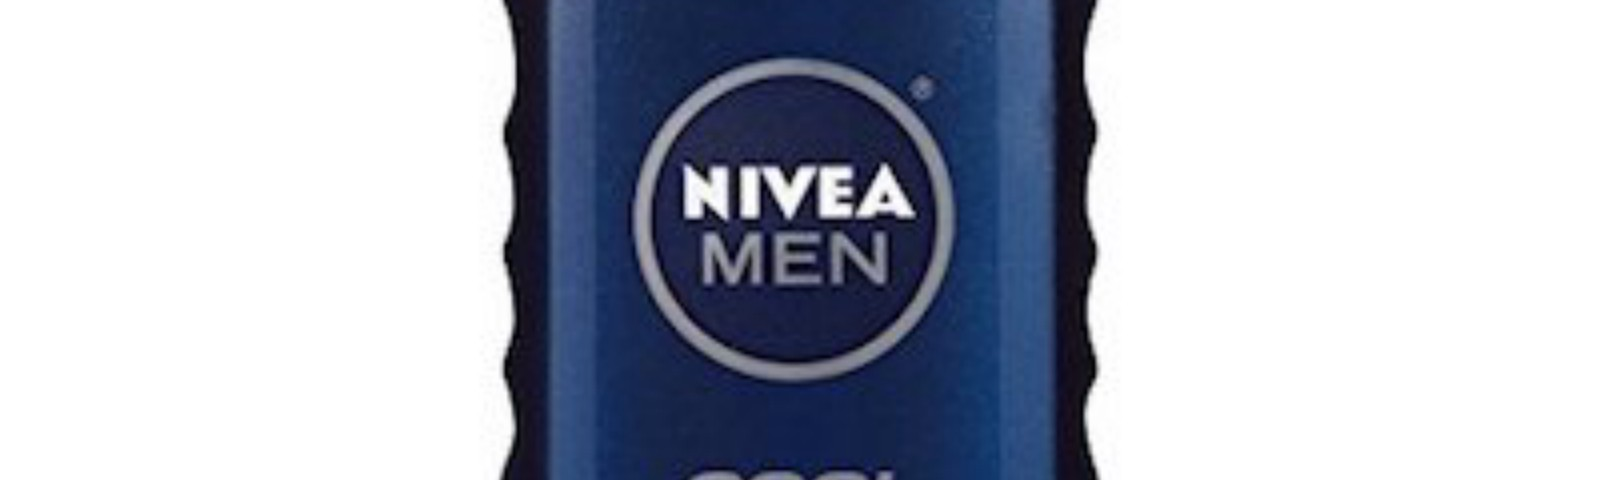 Nivea Men's Cool 3-in-1 Body Wash